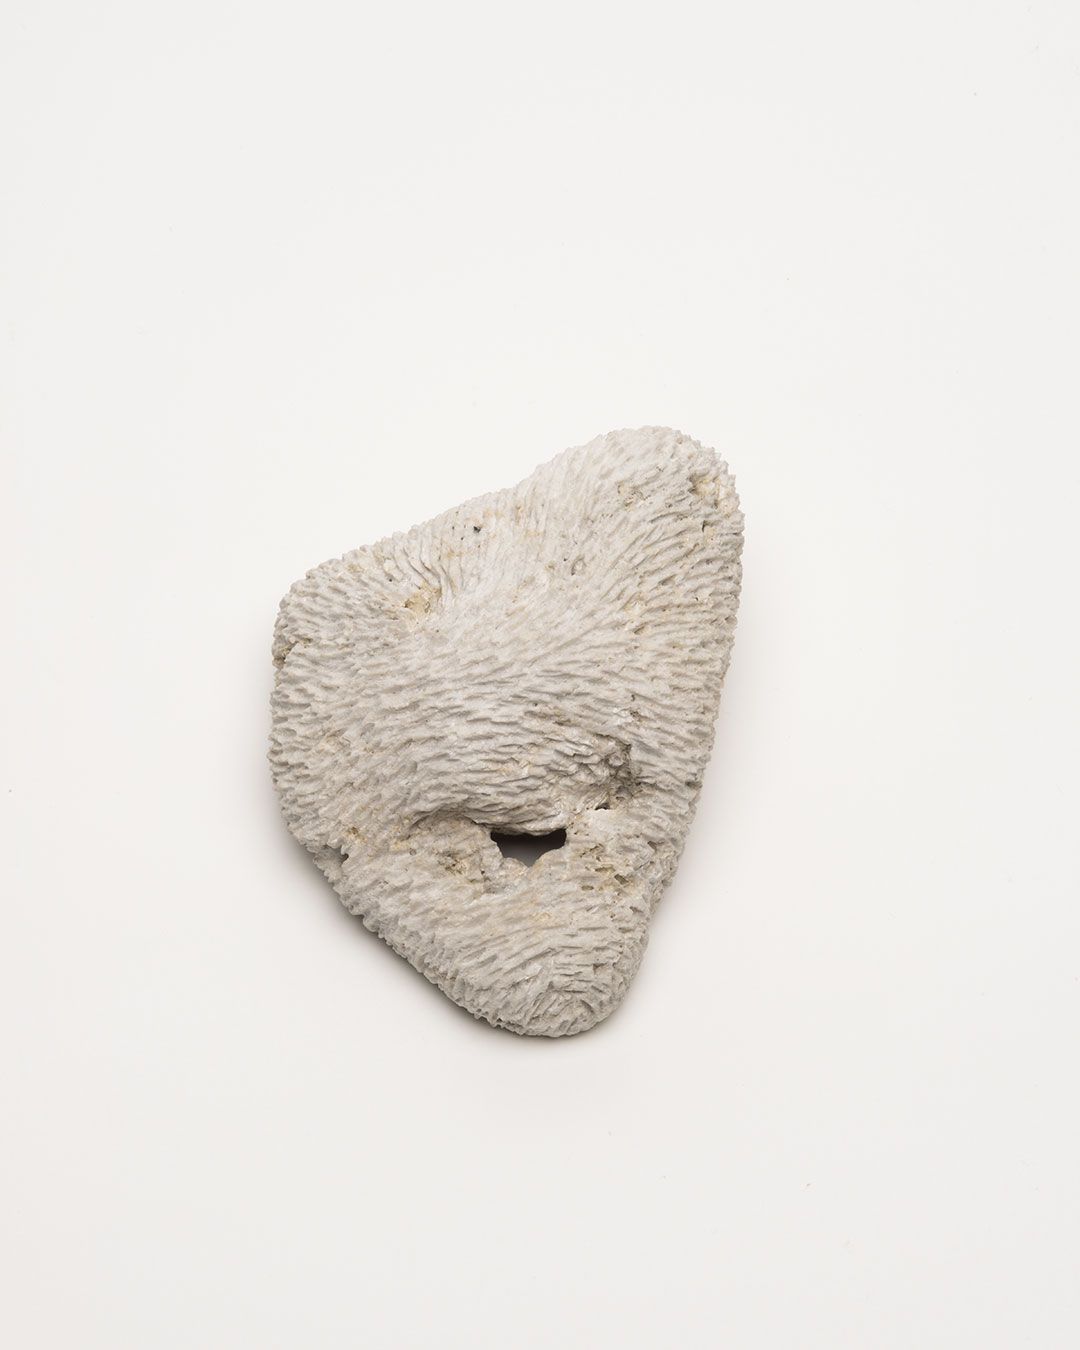 Vivi Touloumidi, What Will the Cosmos Say? 2013, brooch; pumice stone, steel, 110 x 80 x 70 mm, €280 (Image: front)